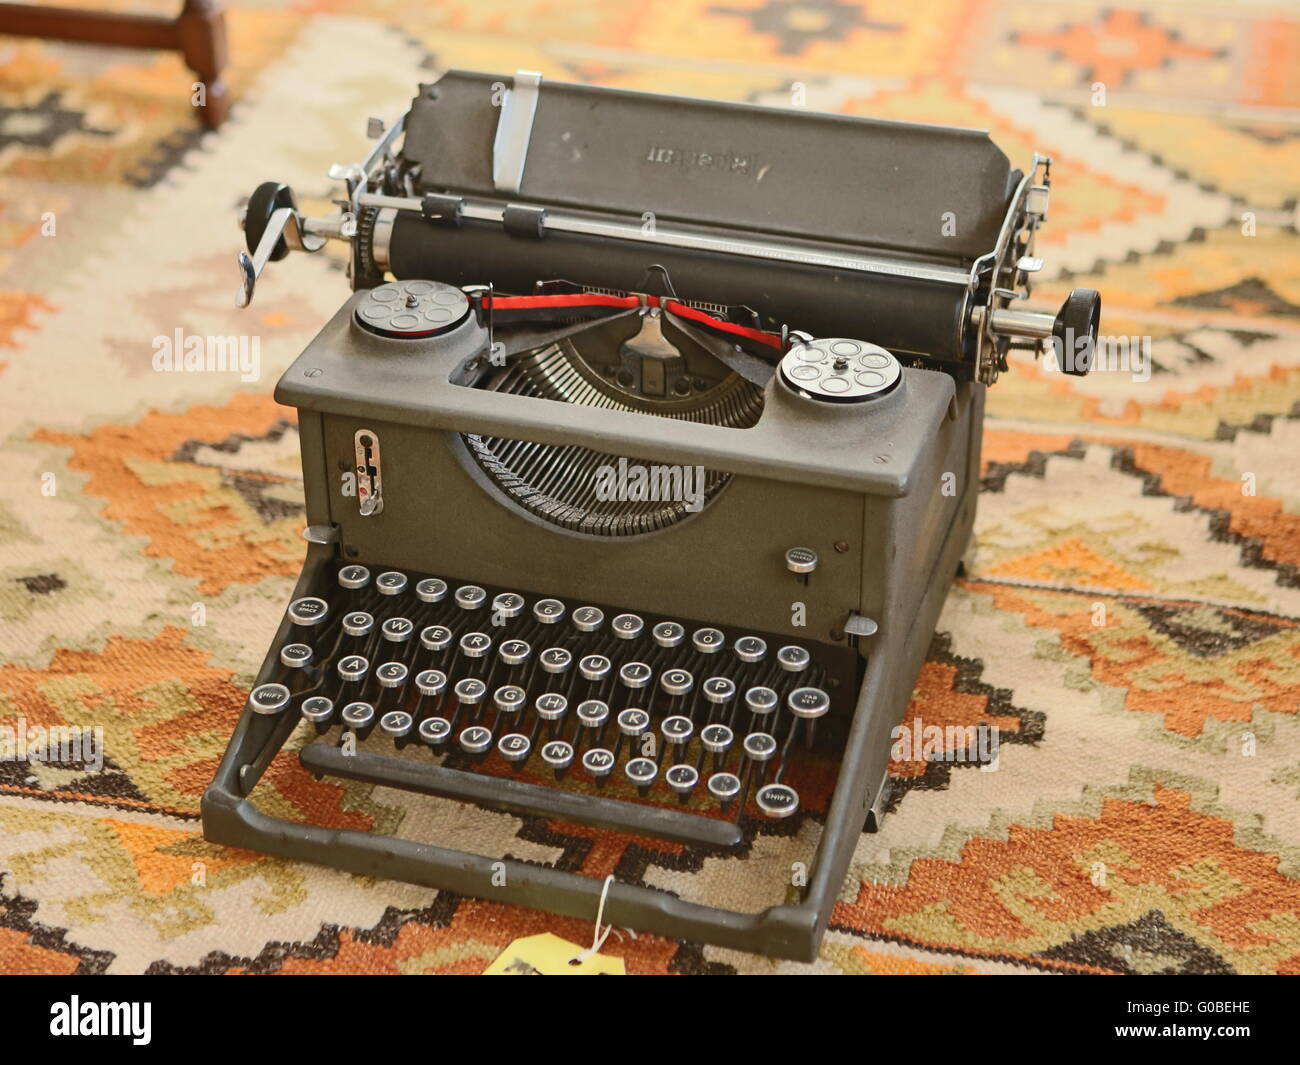 Imperial Model 50 Standard 1920'S Typewriter - Stock Image